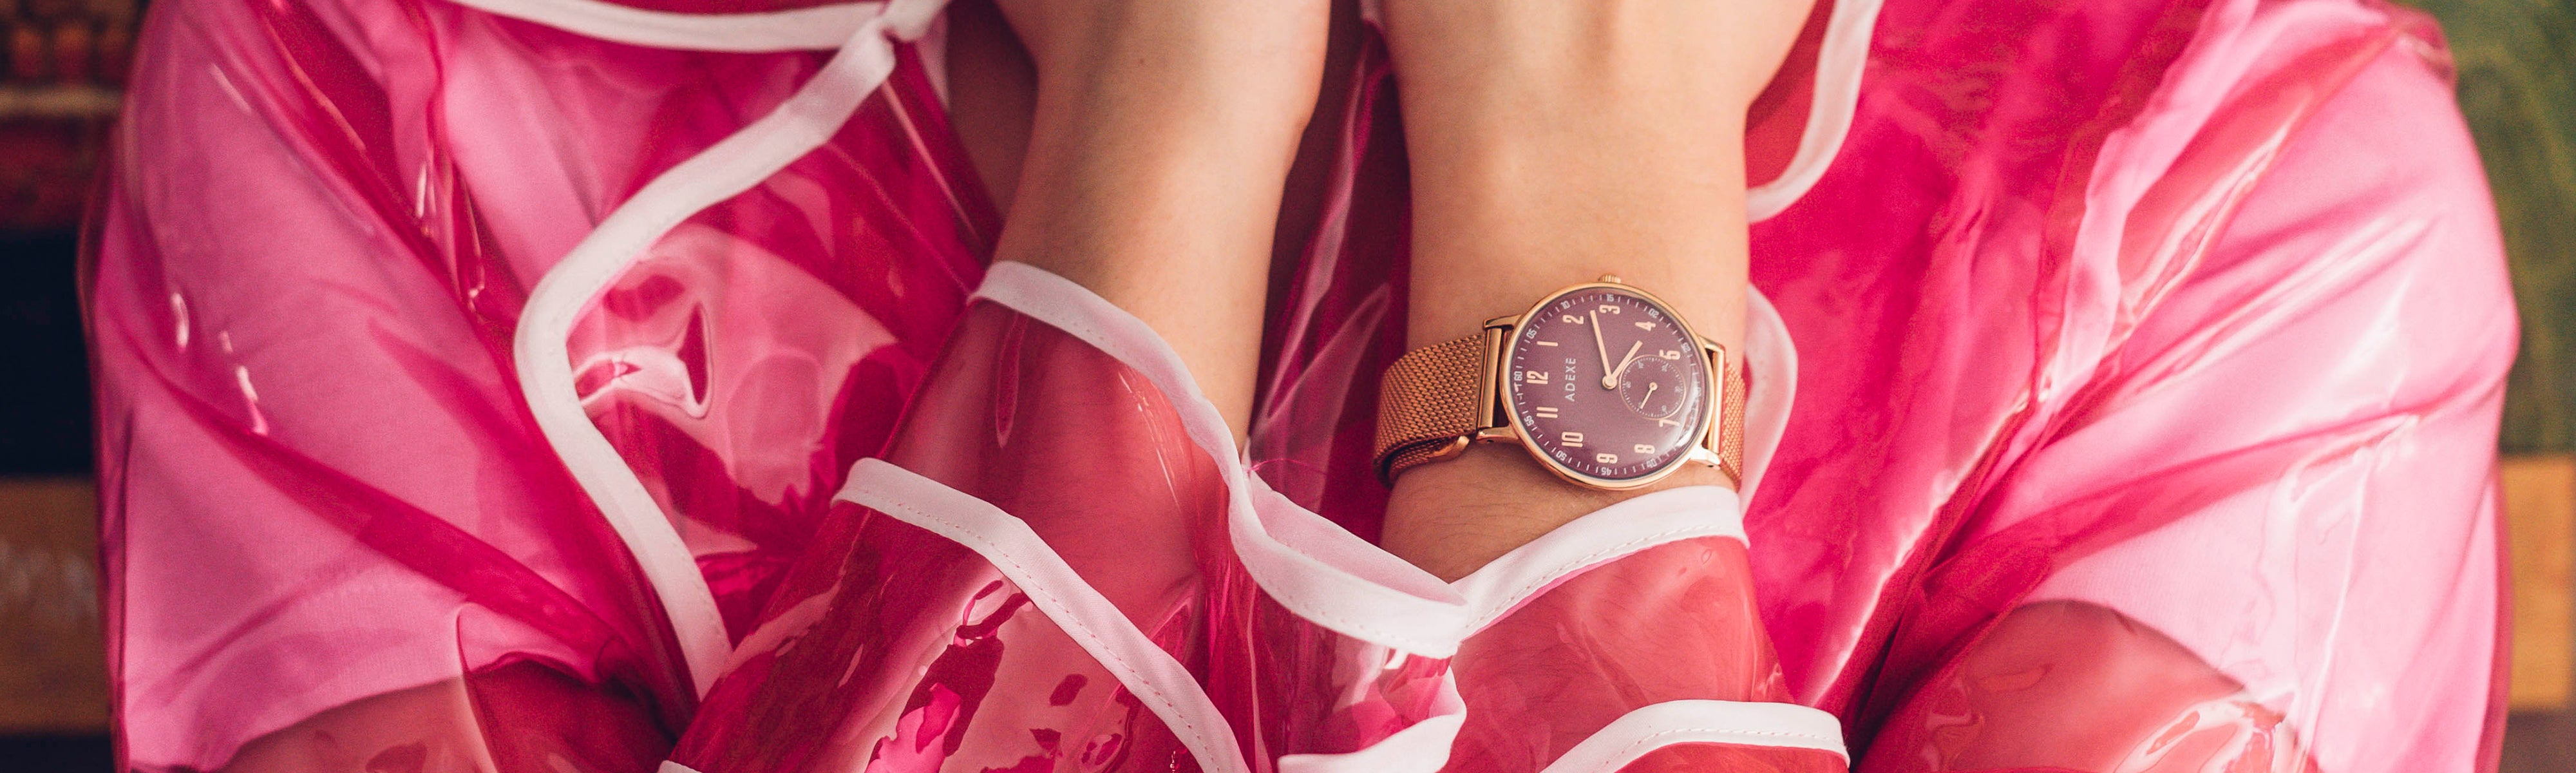 ADEXE Female Watches